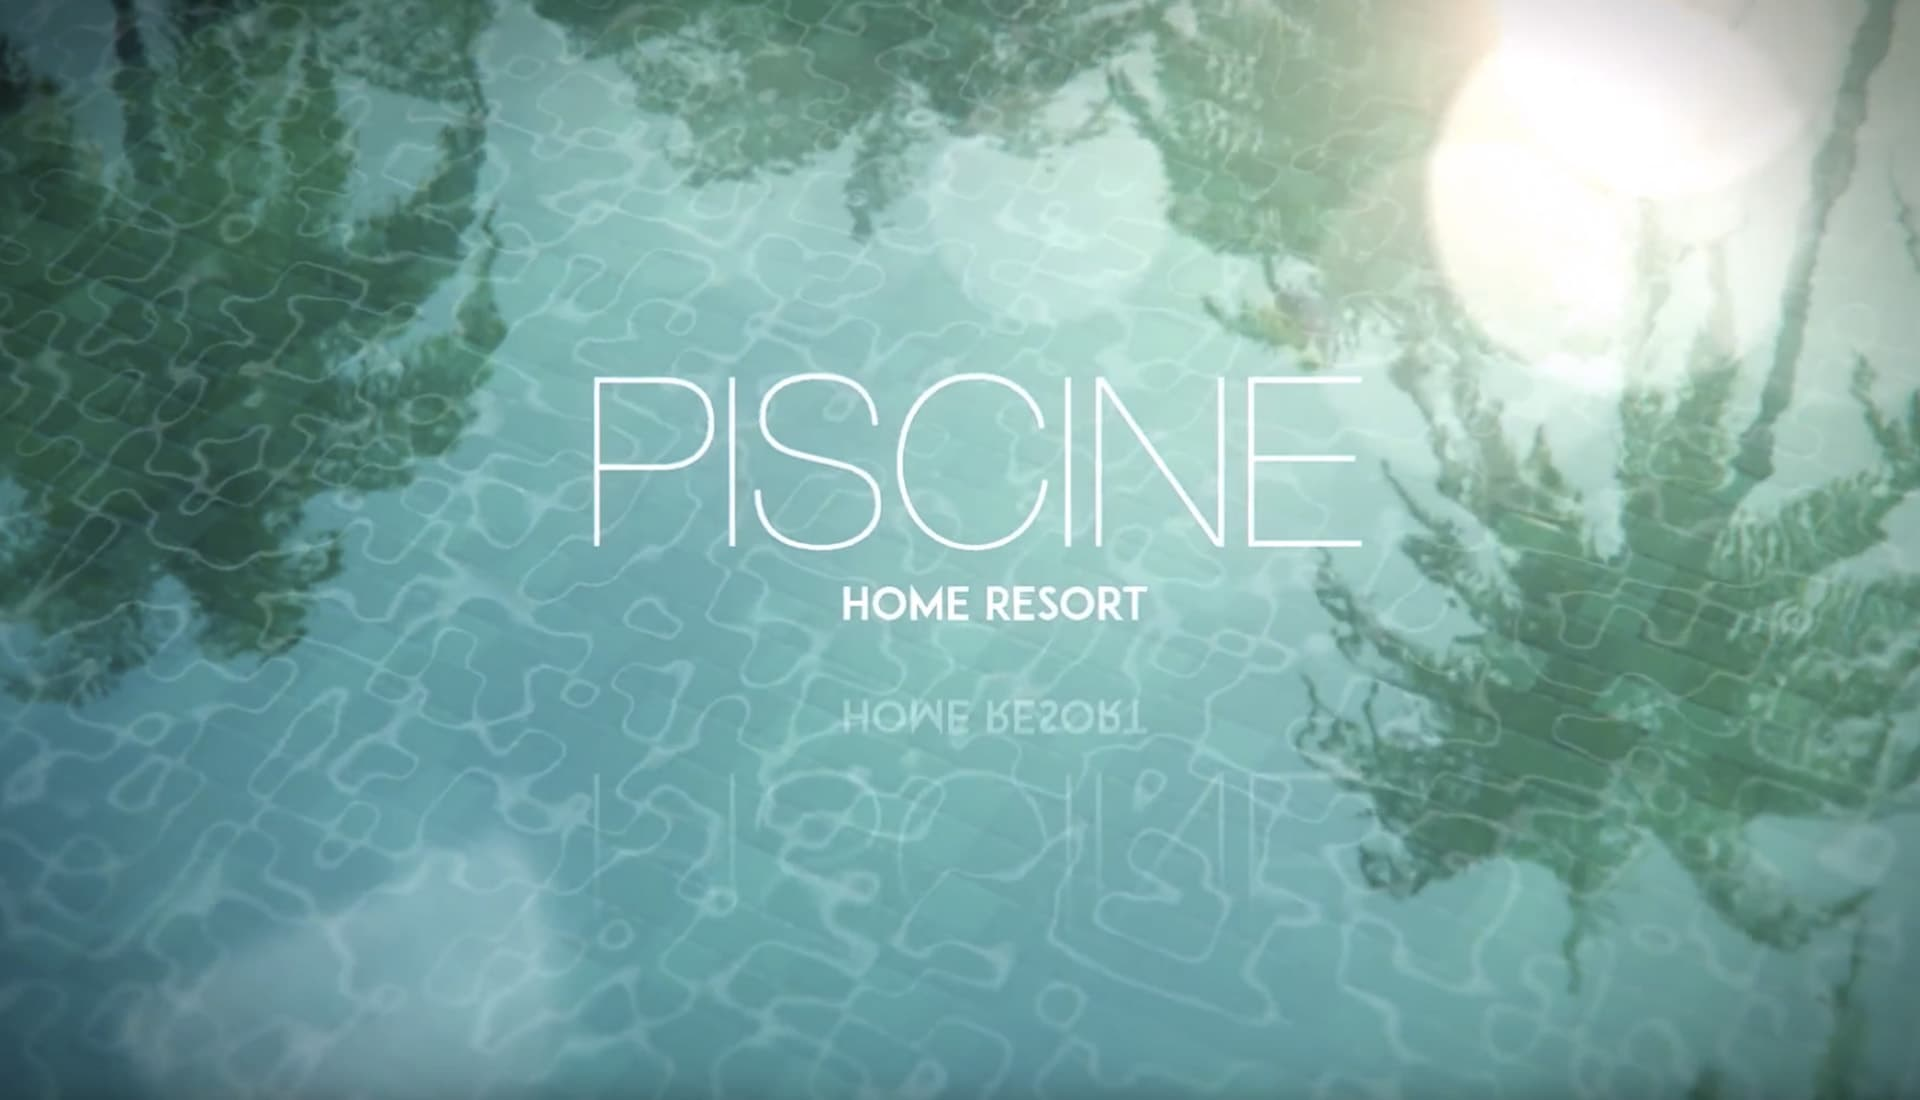 PISCINE HOME RESORT